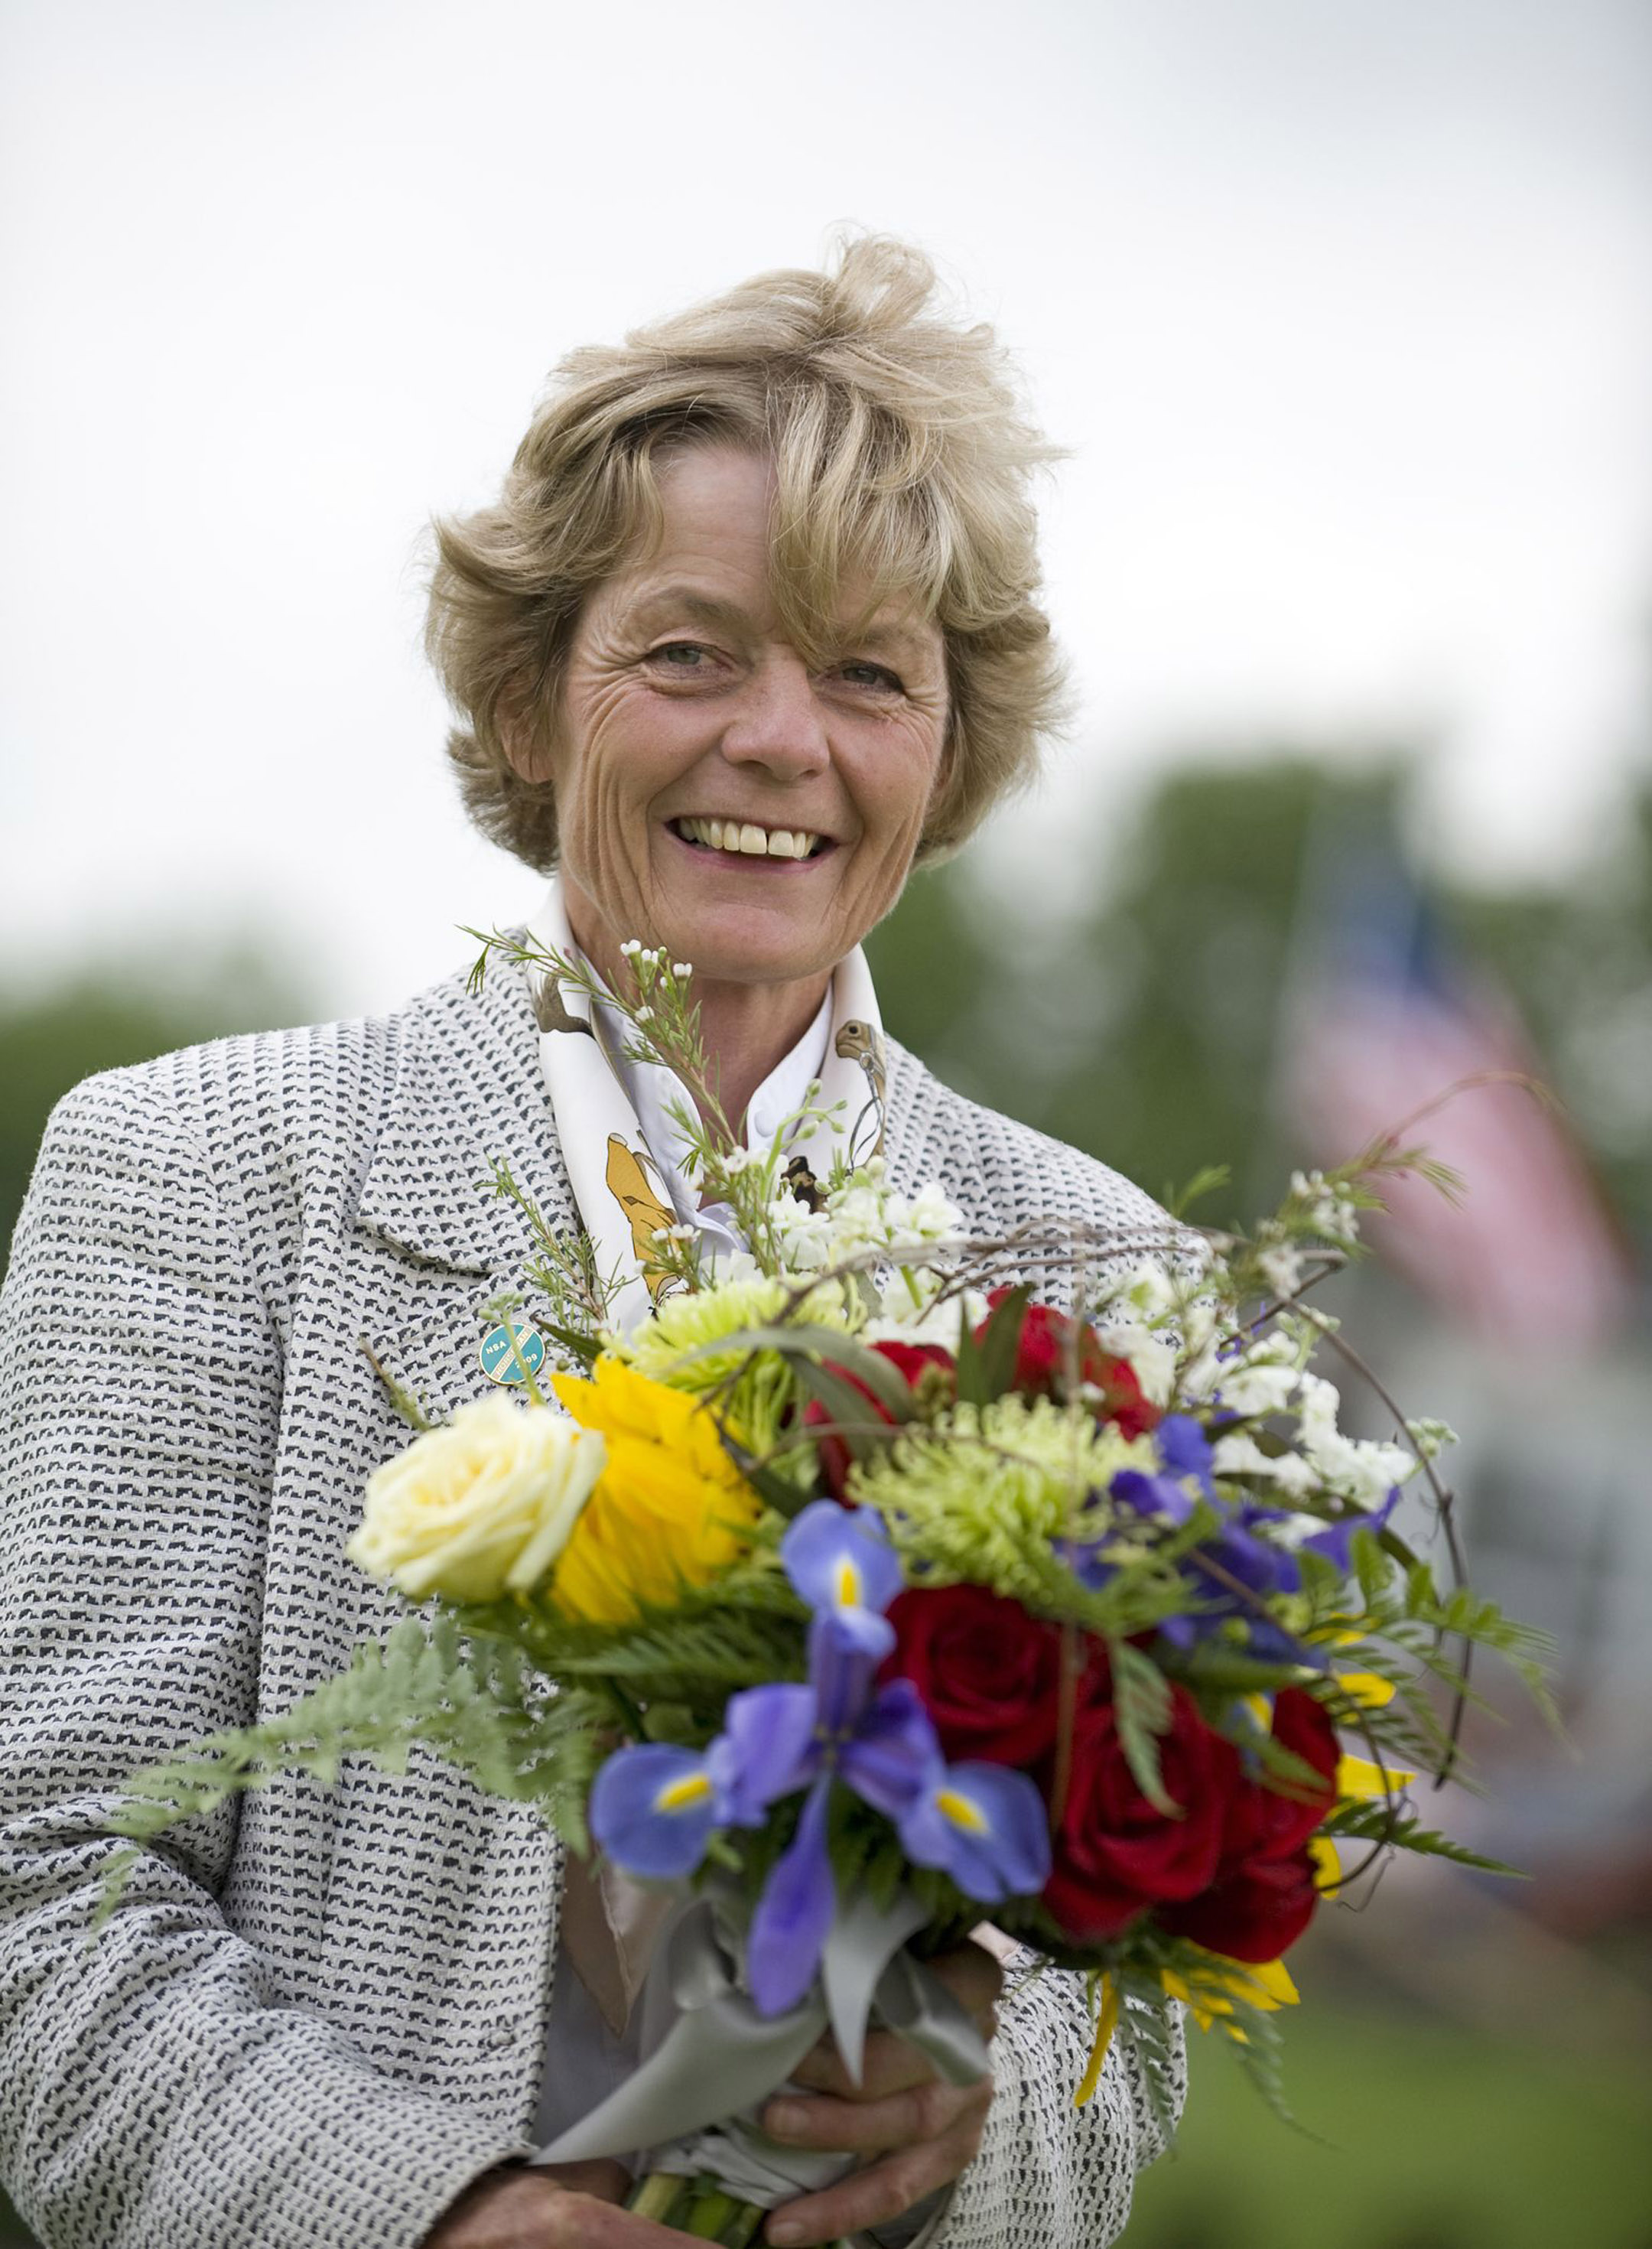 Janet Elliot honored at the Radnor Races (Tod Marks)